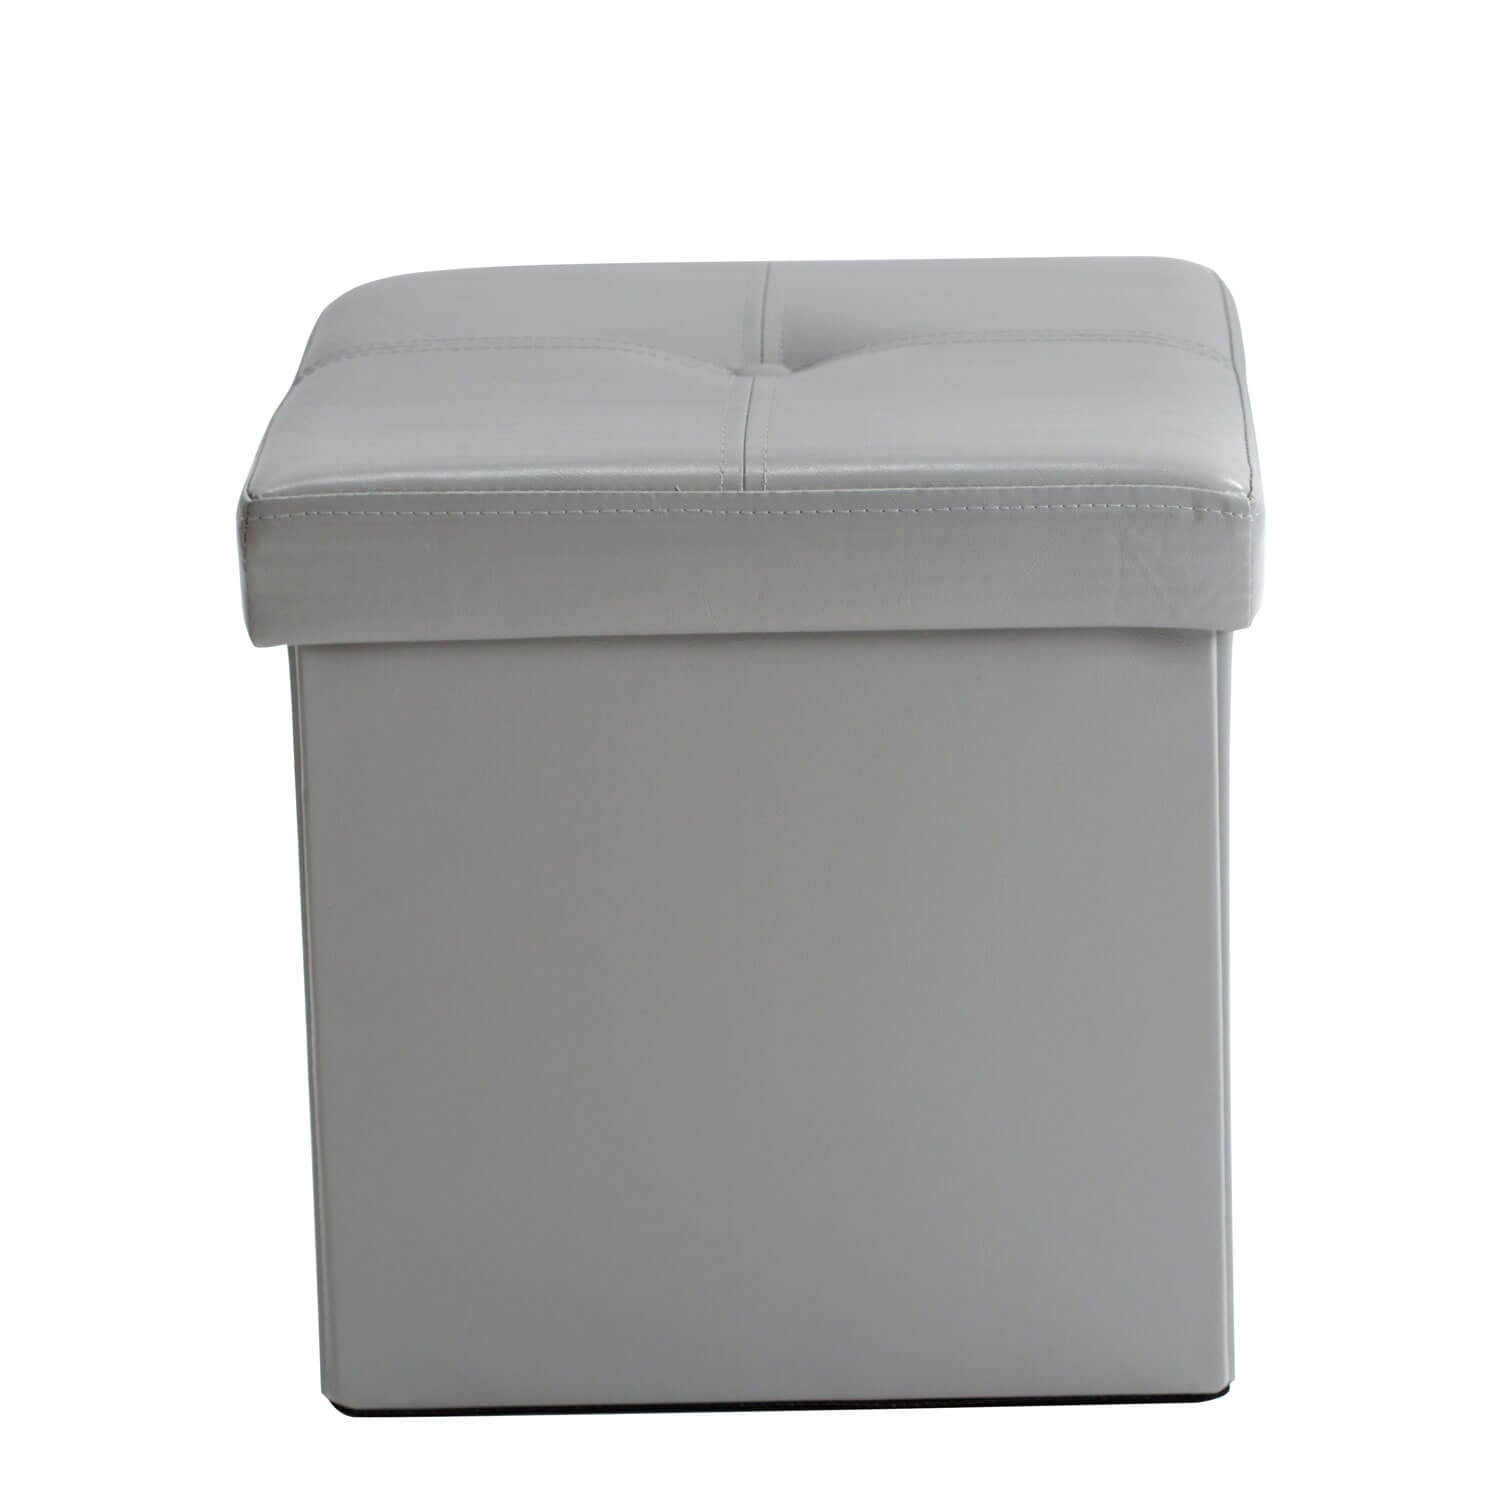 Single Collapsible Storage Ottoman - Grey